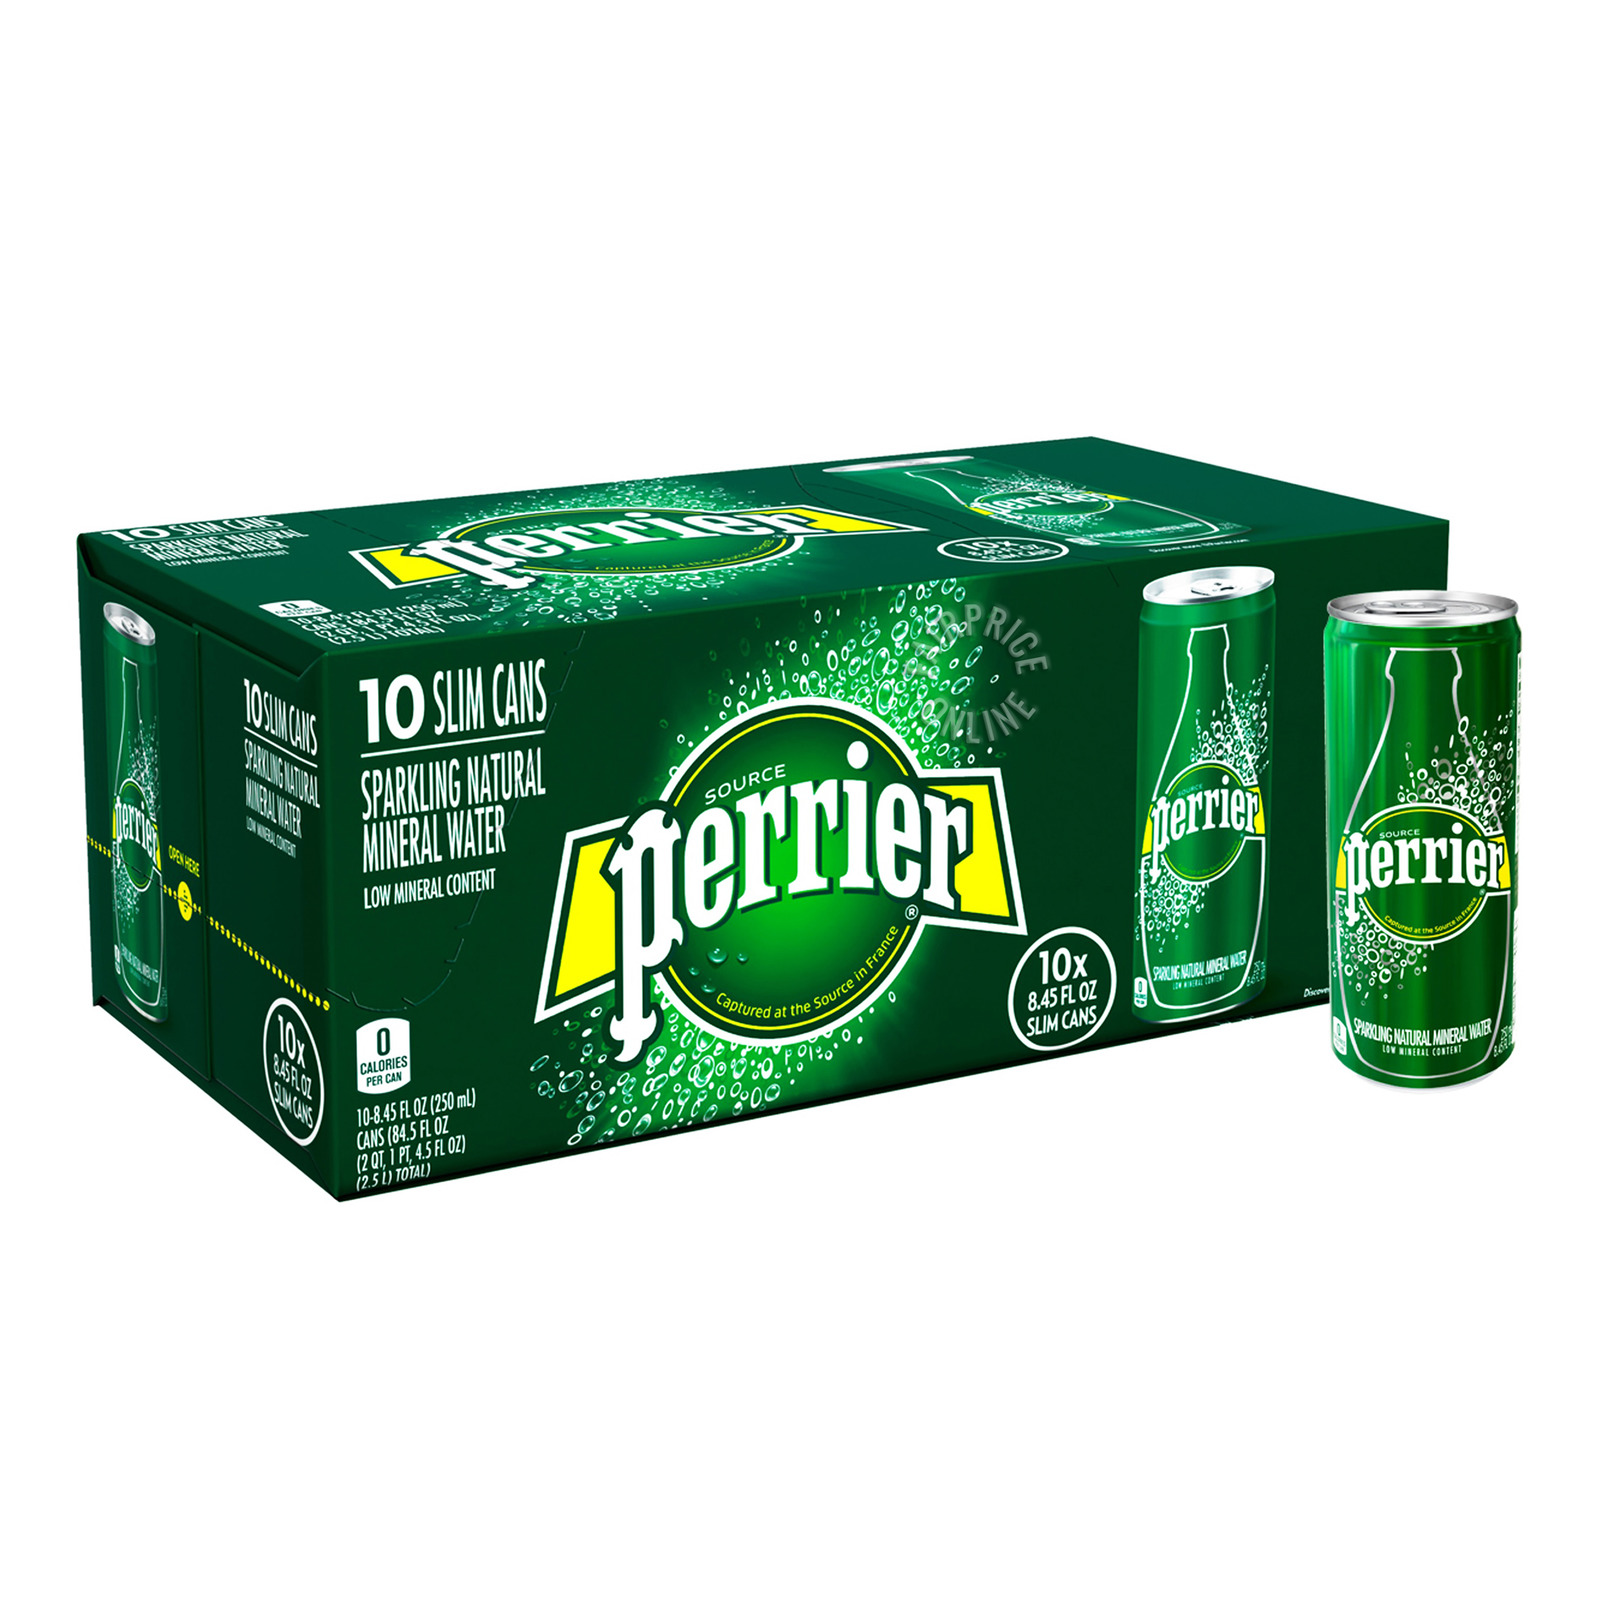 Perrier Lemon Sparkling Natural Mineral Water Fridge Pack